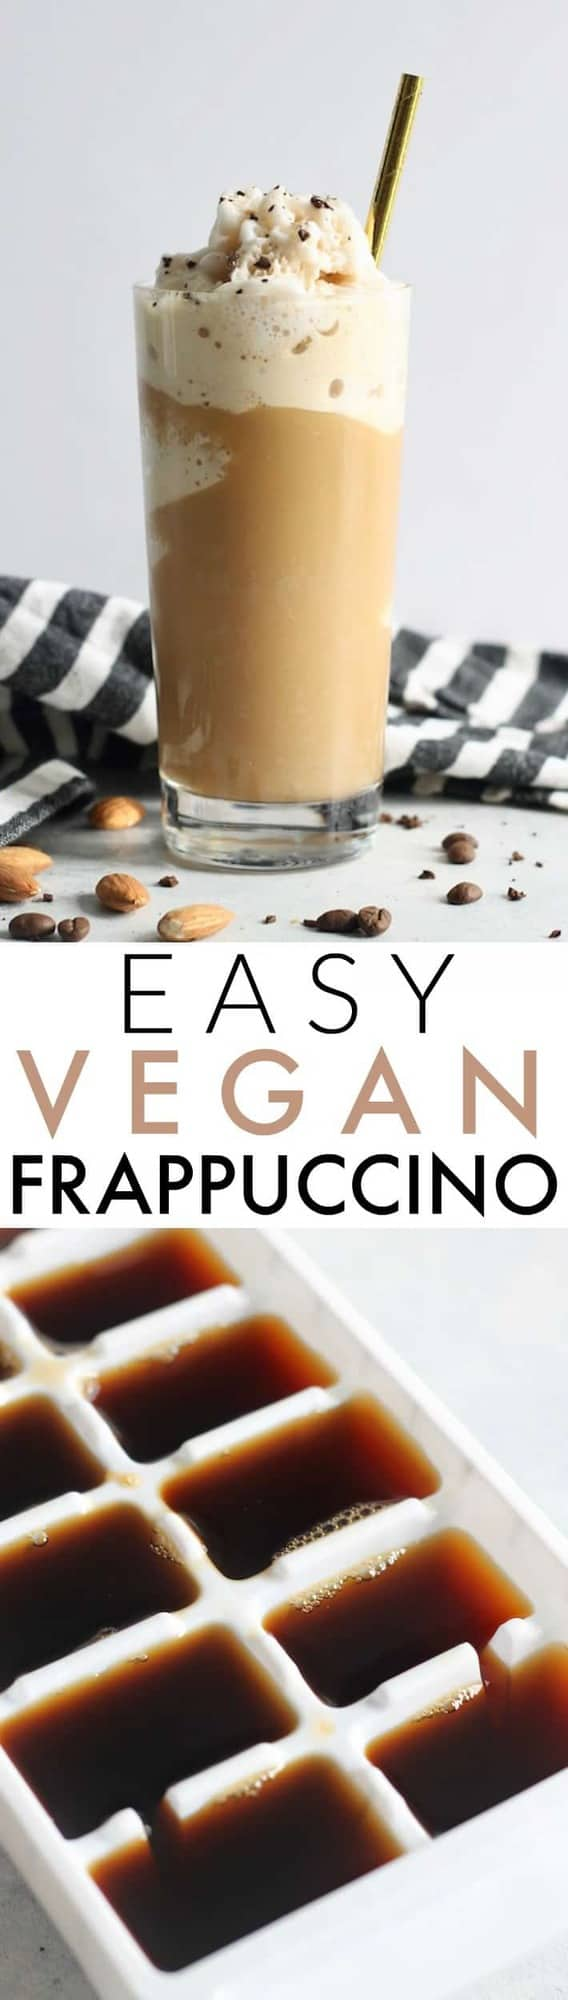 This delicious 4-ingredient Vegan Frappuccino is super creamy, easy, and cheap to make!